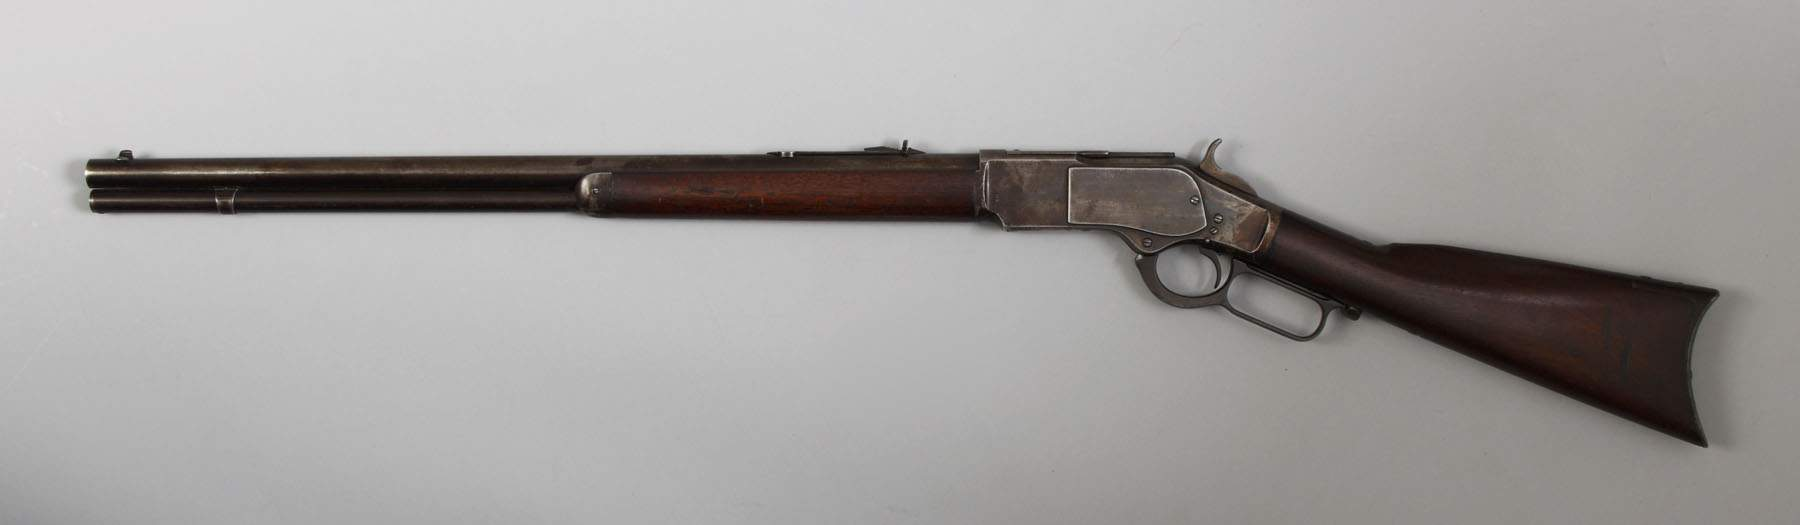 Winchester Model 1873 Rifle Second Model  Cottone Auctions